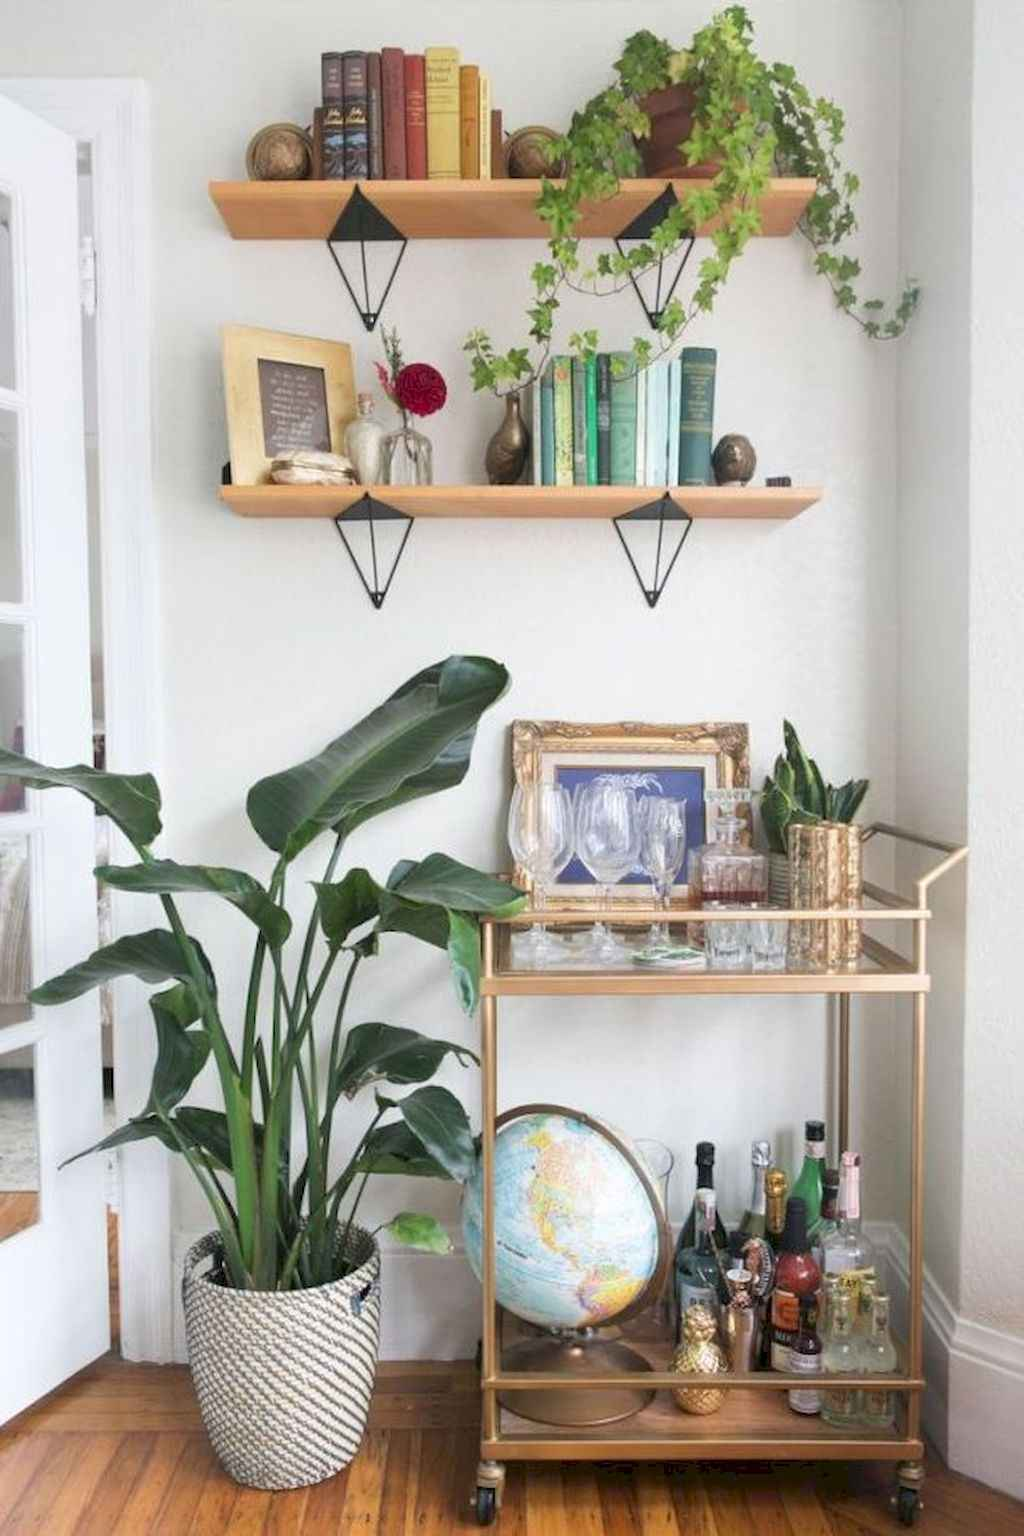 Couples first apartment decorating ideas (12)